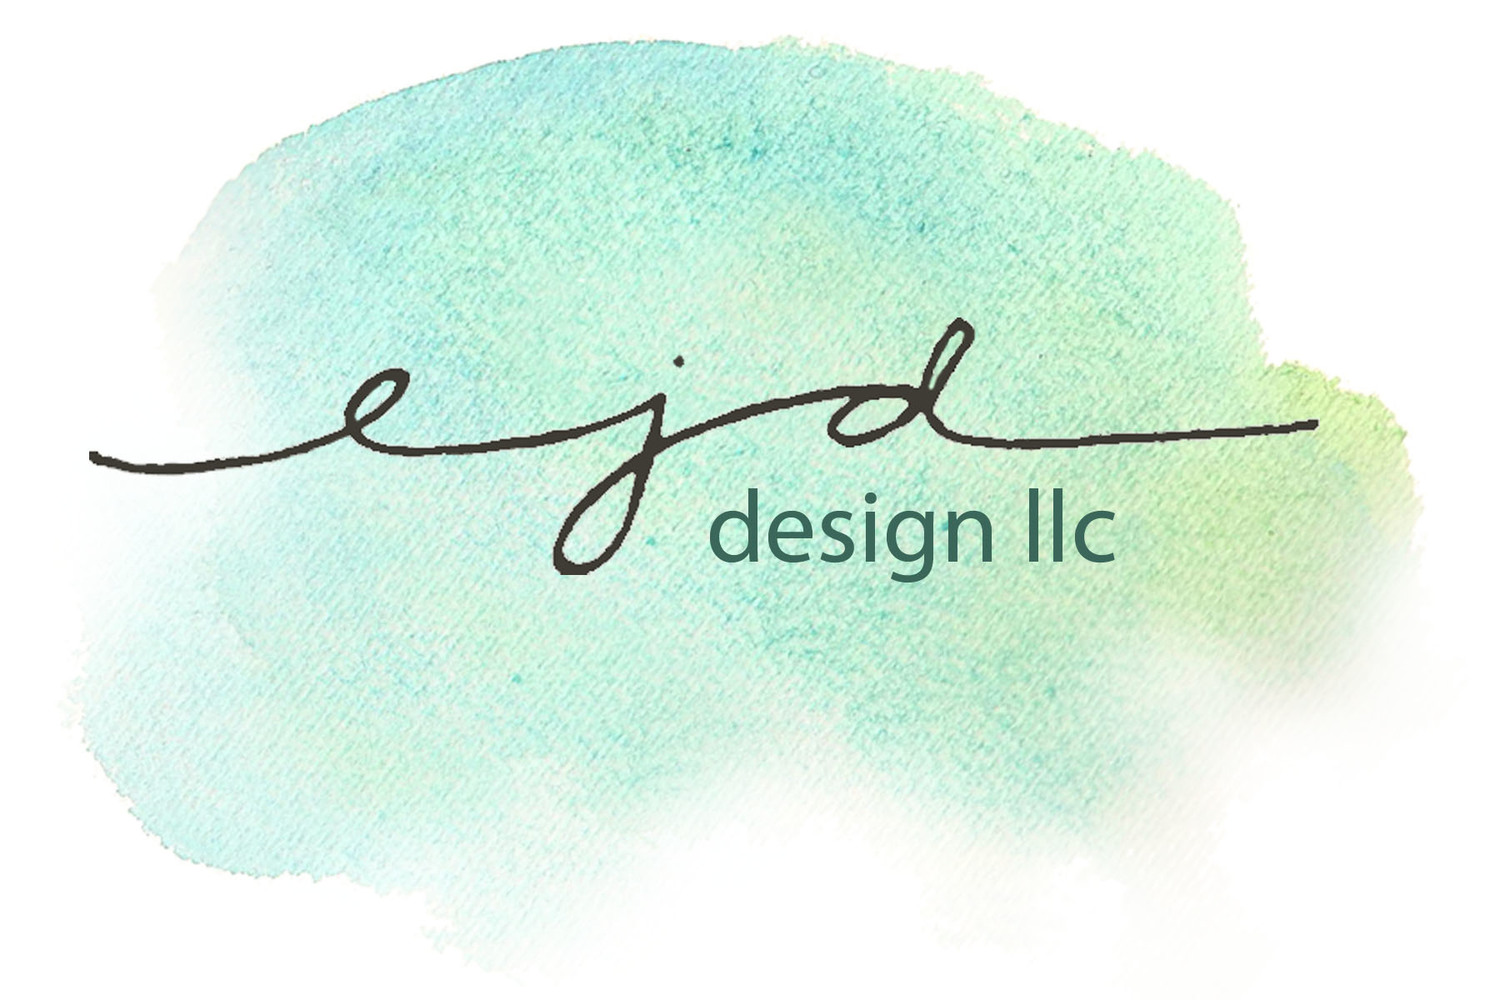 EJD DESIGN LLC